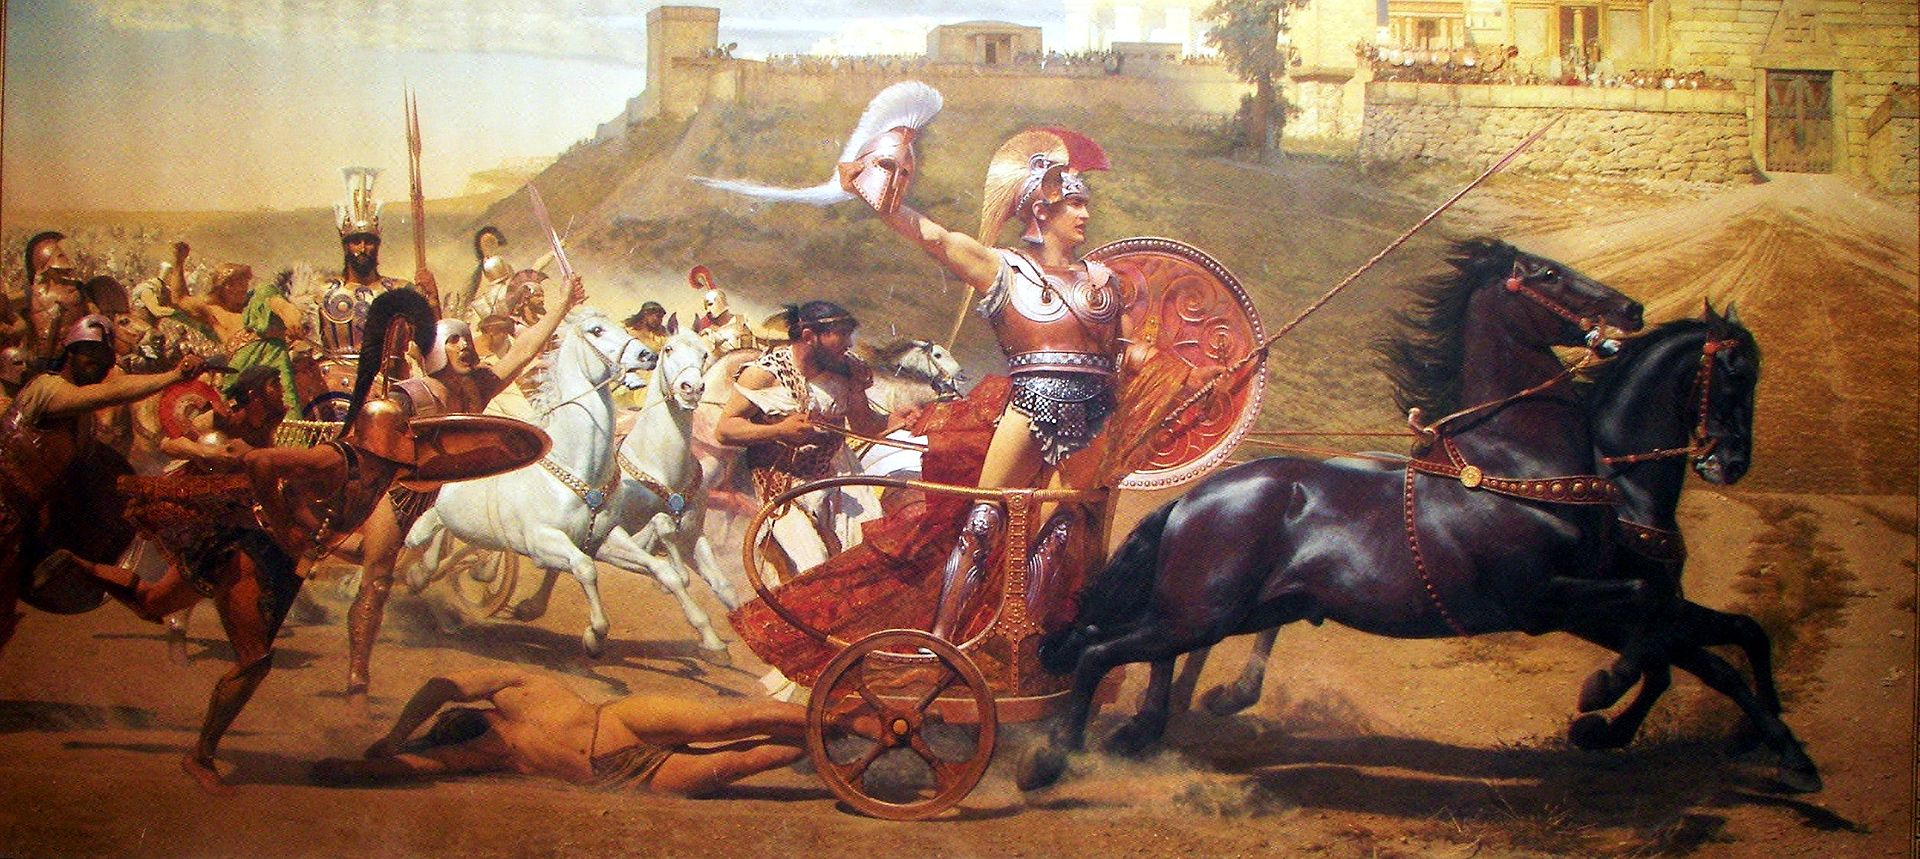 Achilles' most notable feat during the Trojan War was the slaying of the Trojan hero Hector outside the gates of Troy.